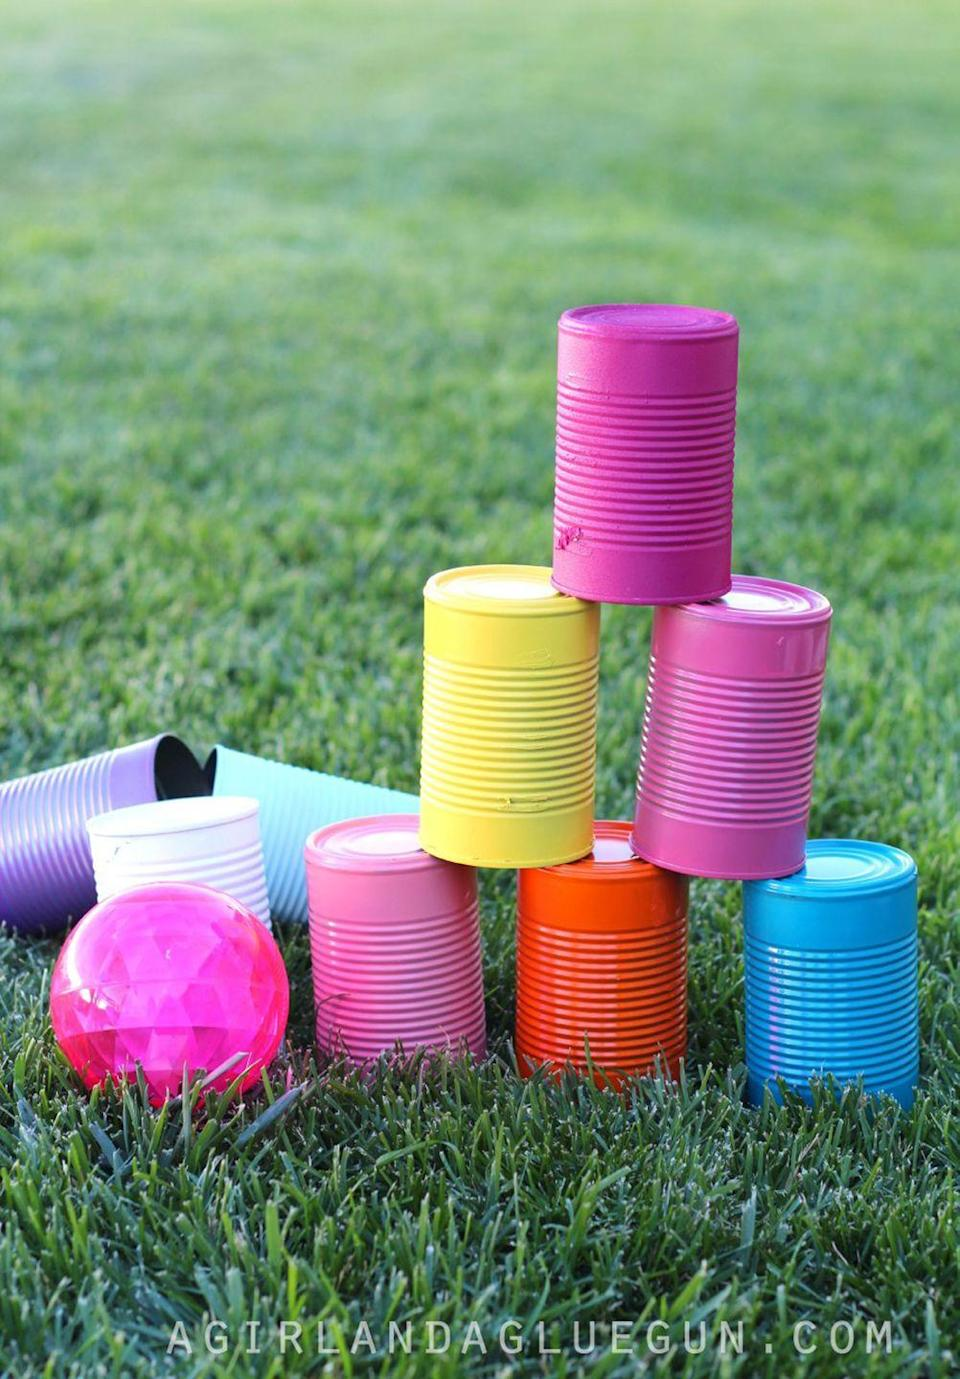 """<p>Reuse soup cans to make this DIY bowling game. Bonus: Ask your kids to help with decorating. </p><p><strong>Get the tutorial at <a href=""""http://www.agirlandagluegun.com/2016/06/5-fun-things-to-do-with-tin-cans.html"""" rel=""""nofollow noopener"""" target=""""_blank"""" data-ylk=""""slk:A Girl and a Glue Gun"""" class=""""link rapid-noclick-resp"""">A Girl and a Glue Gun</a>.</strong></p><p><strong><a class=""""link rapid-noclick-resp"""" href=""""https://www.amazon.com/Bluemoona-10-Pcs-BristlesPerfect-Adhesives/dp/B01J0XVWDG?tag=syn-yahoo-20&ascsubtag=%5Bartid%7C10050.g.21095894%5Bsrc%7Cyahoo-us"""" rel=""""nofollow noopener"""" target=""""_blank"""" data-ylk=""""slk:SHOP PAINT BRUSHES"""">SHOP PAINT BRUSHES</a></strong></p>"""